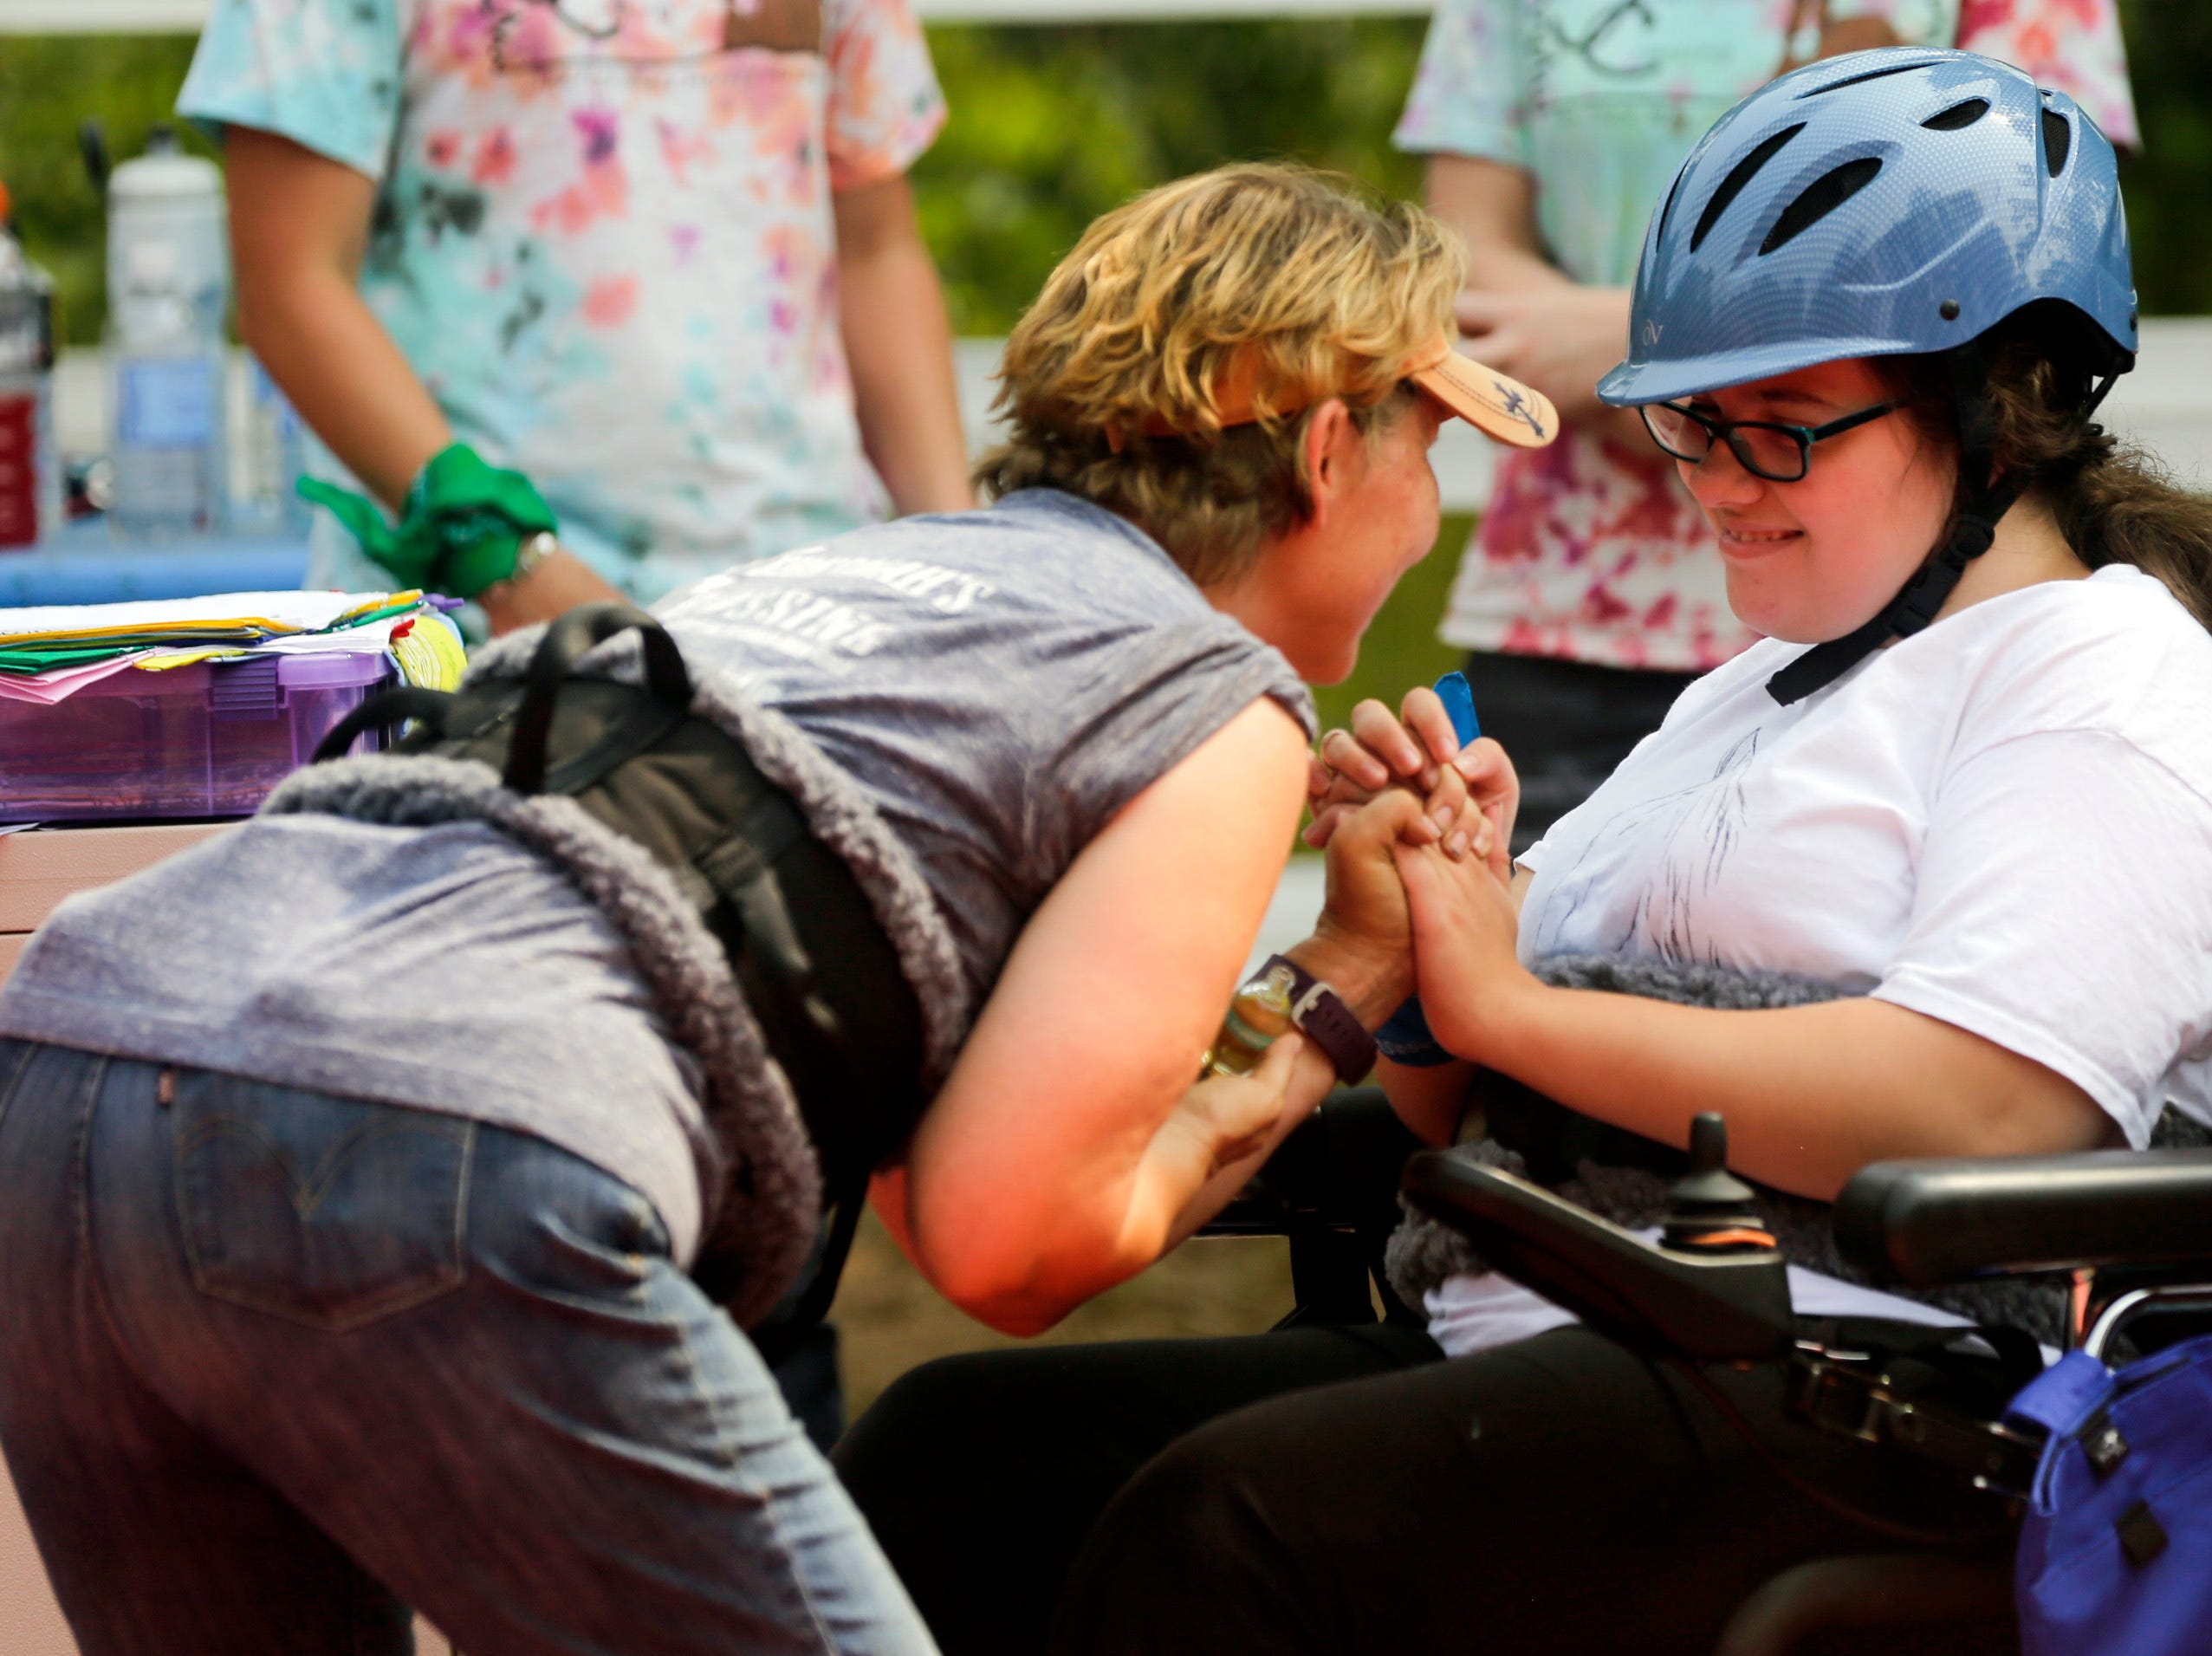 Kathleen Harris and Scedra Stoffel share a moment together before Harris helps Stoffel onto Alan, the horse that Stoffel regularly rides at Jeremiah's Crossing during their ride-a-thon Sunday, August 19, 2018 in Babcock, Wis.